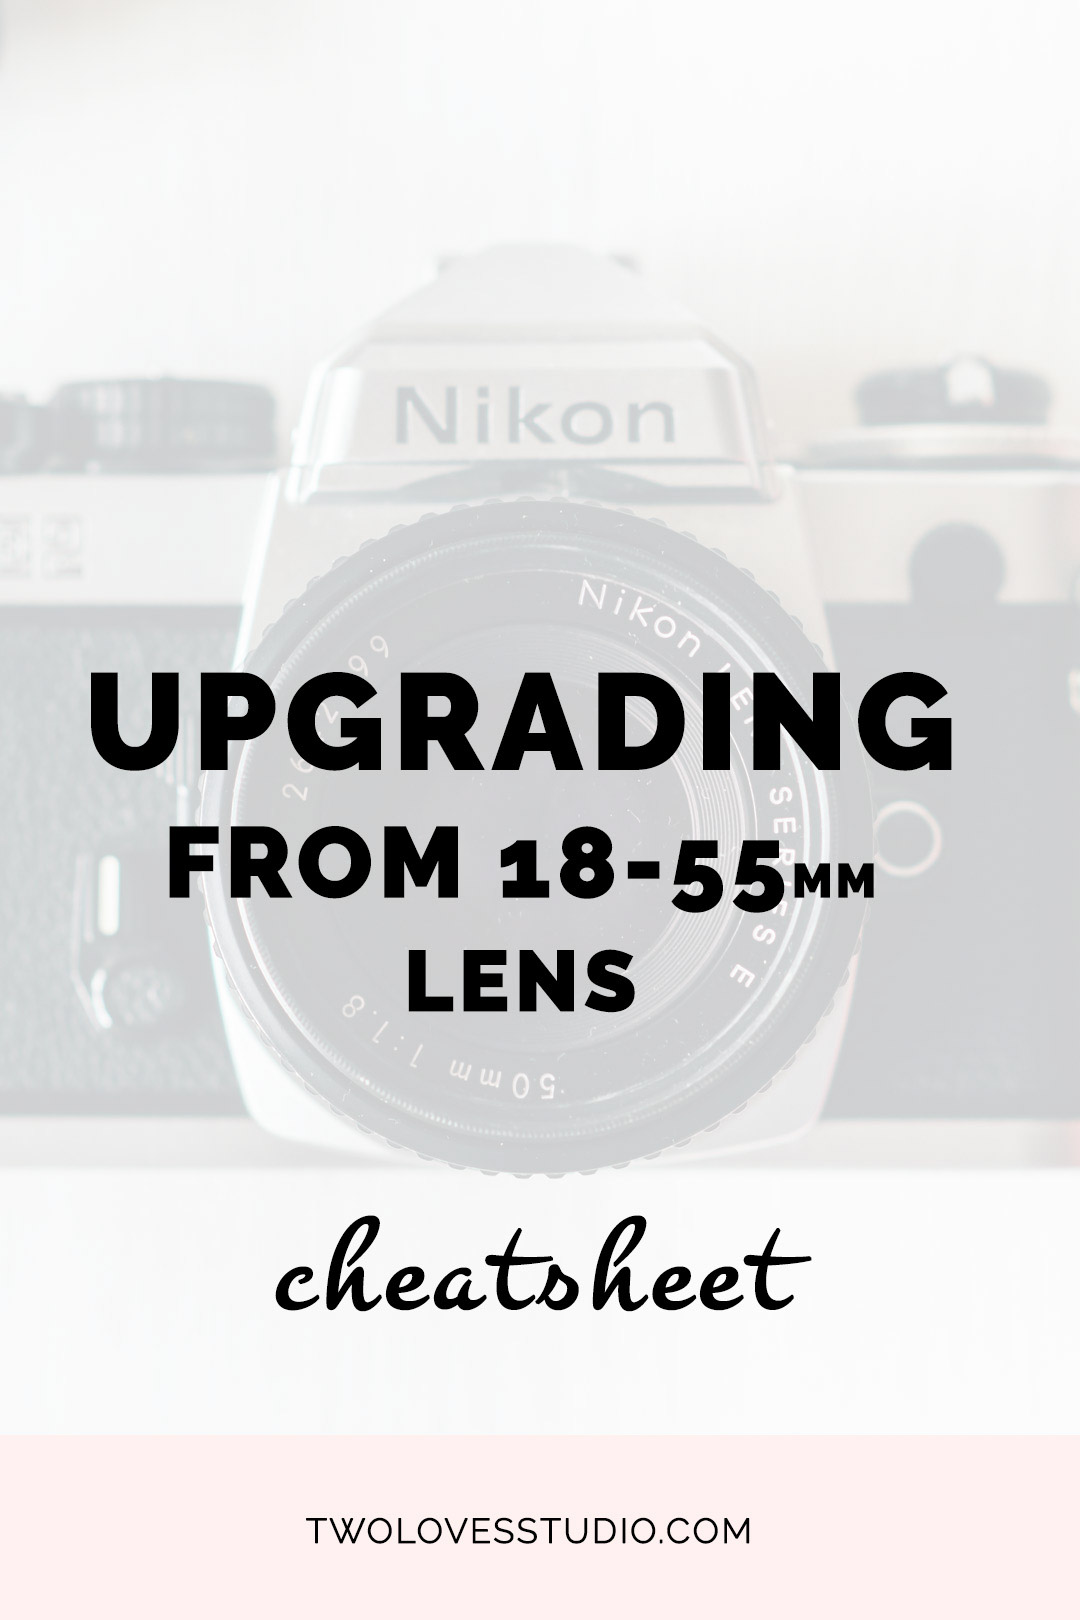 Considering upgrading your 18-55mm lens? Not sure where to start? CLICK through to get access to this FREE cheatsheet to help you consider whether or not to upgrade.